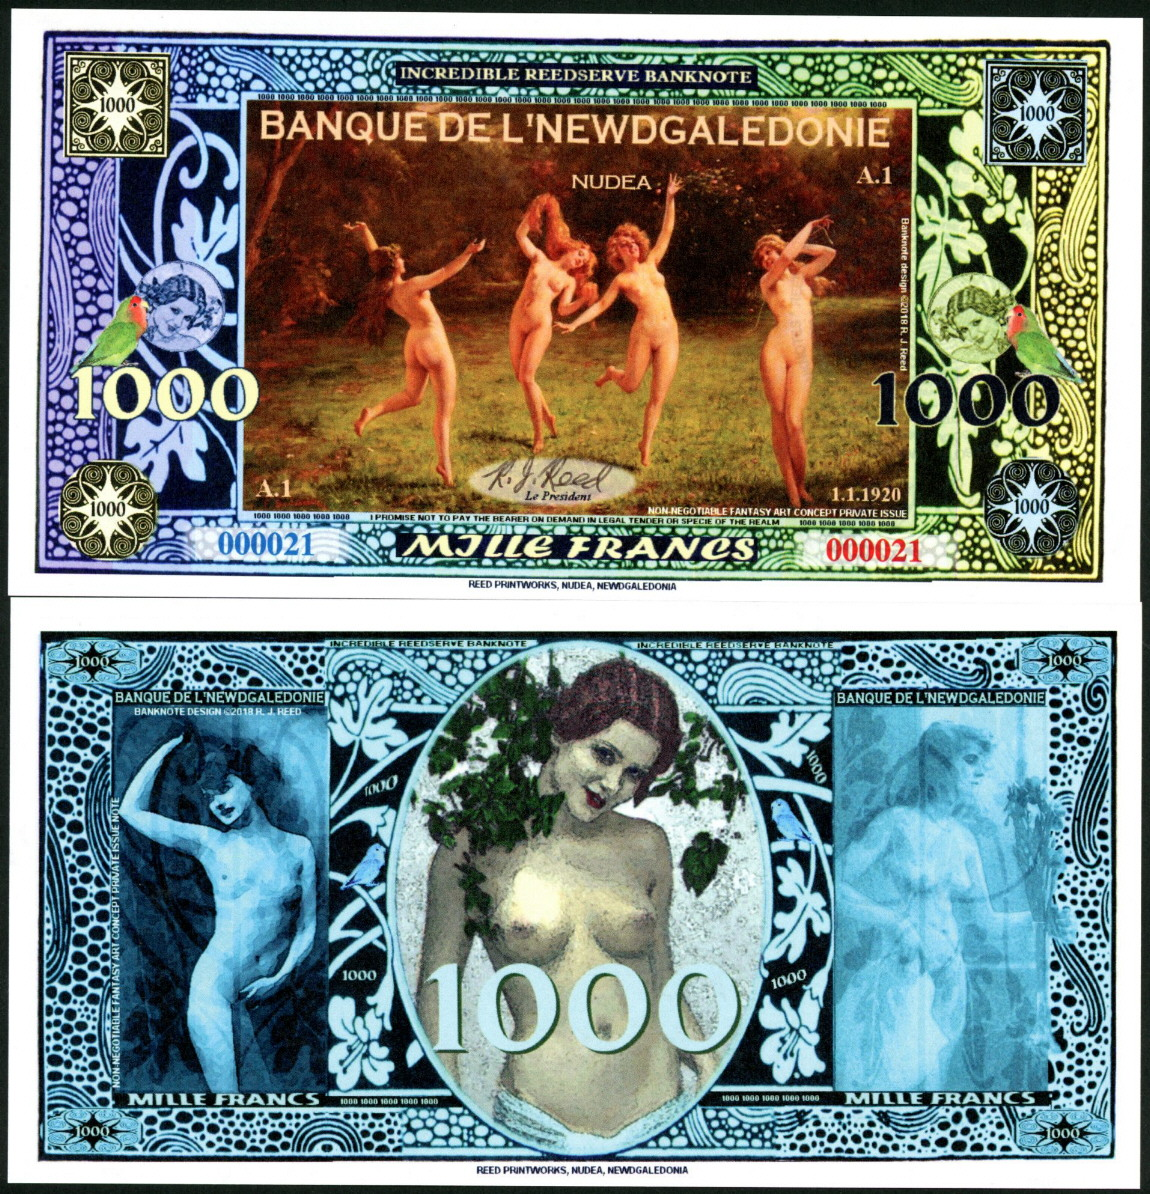 NEW NUDEDENLAND 1000 NUDOLLARS NAKED LADY SEATED NUDE FANTASY MONEY ART NOTE!